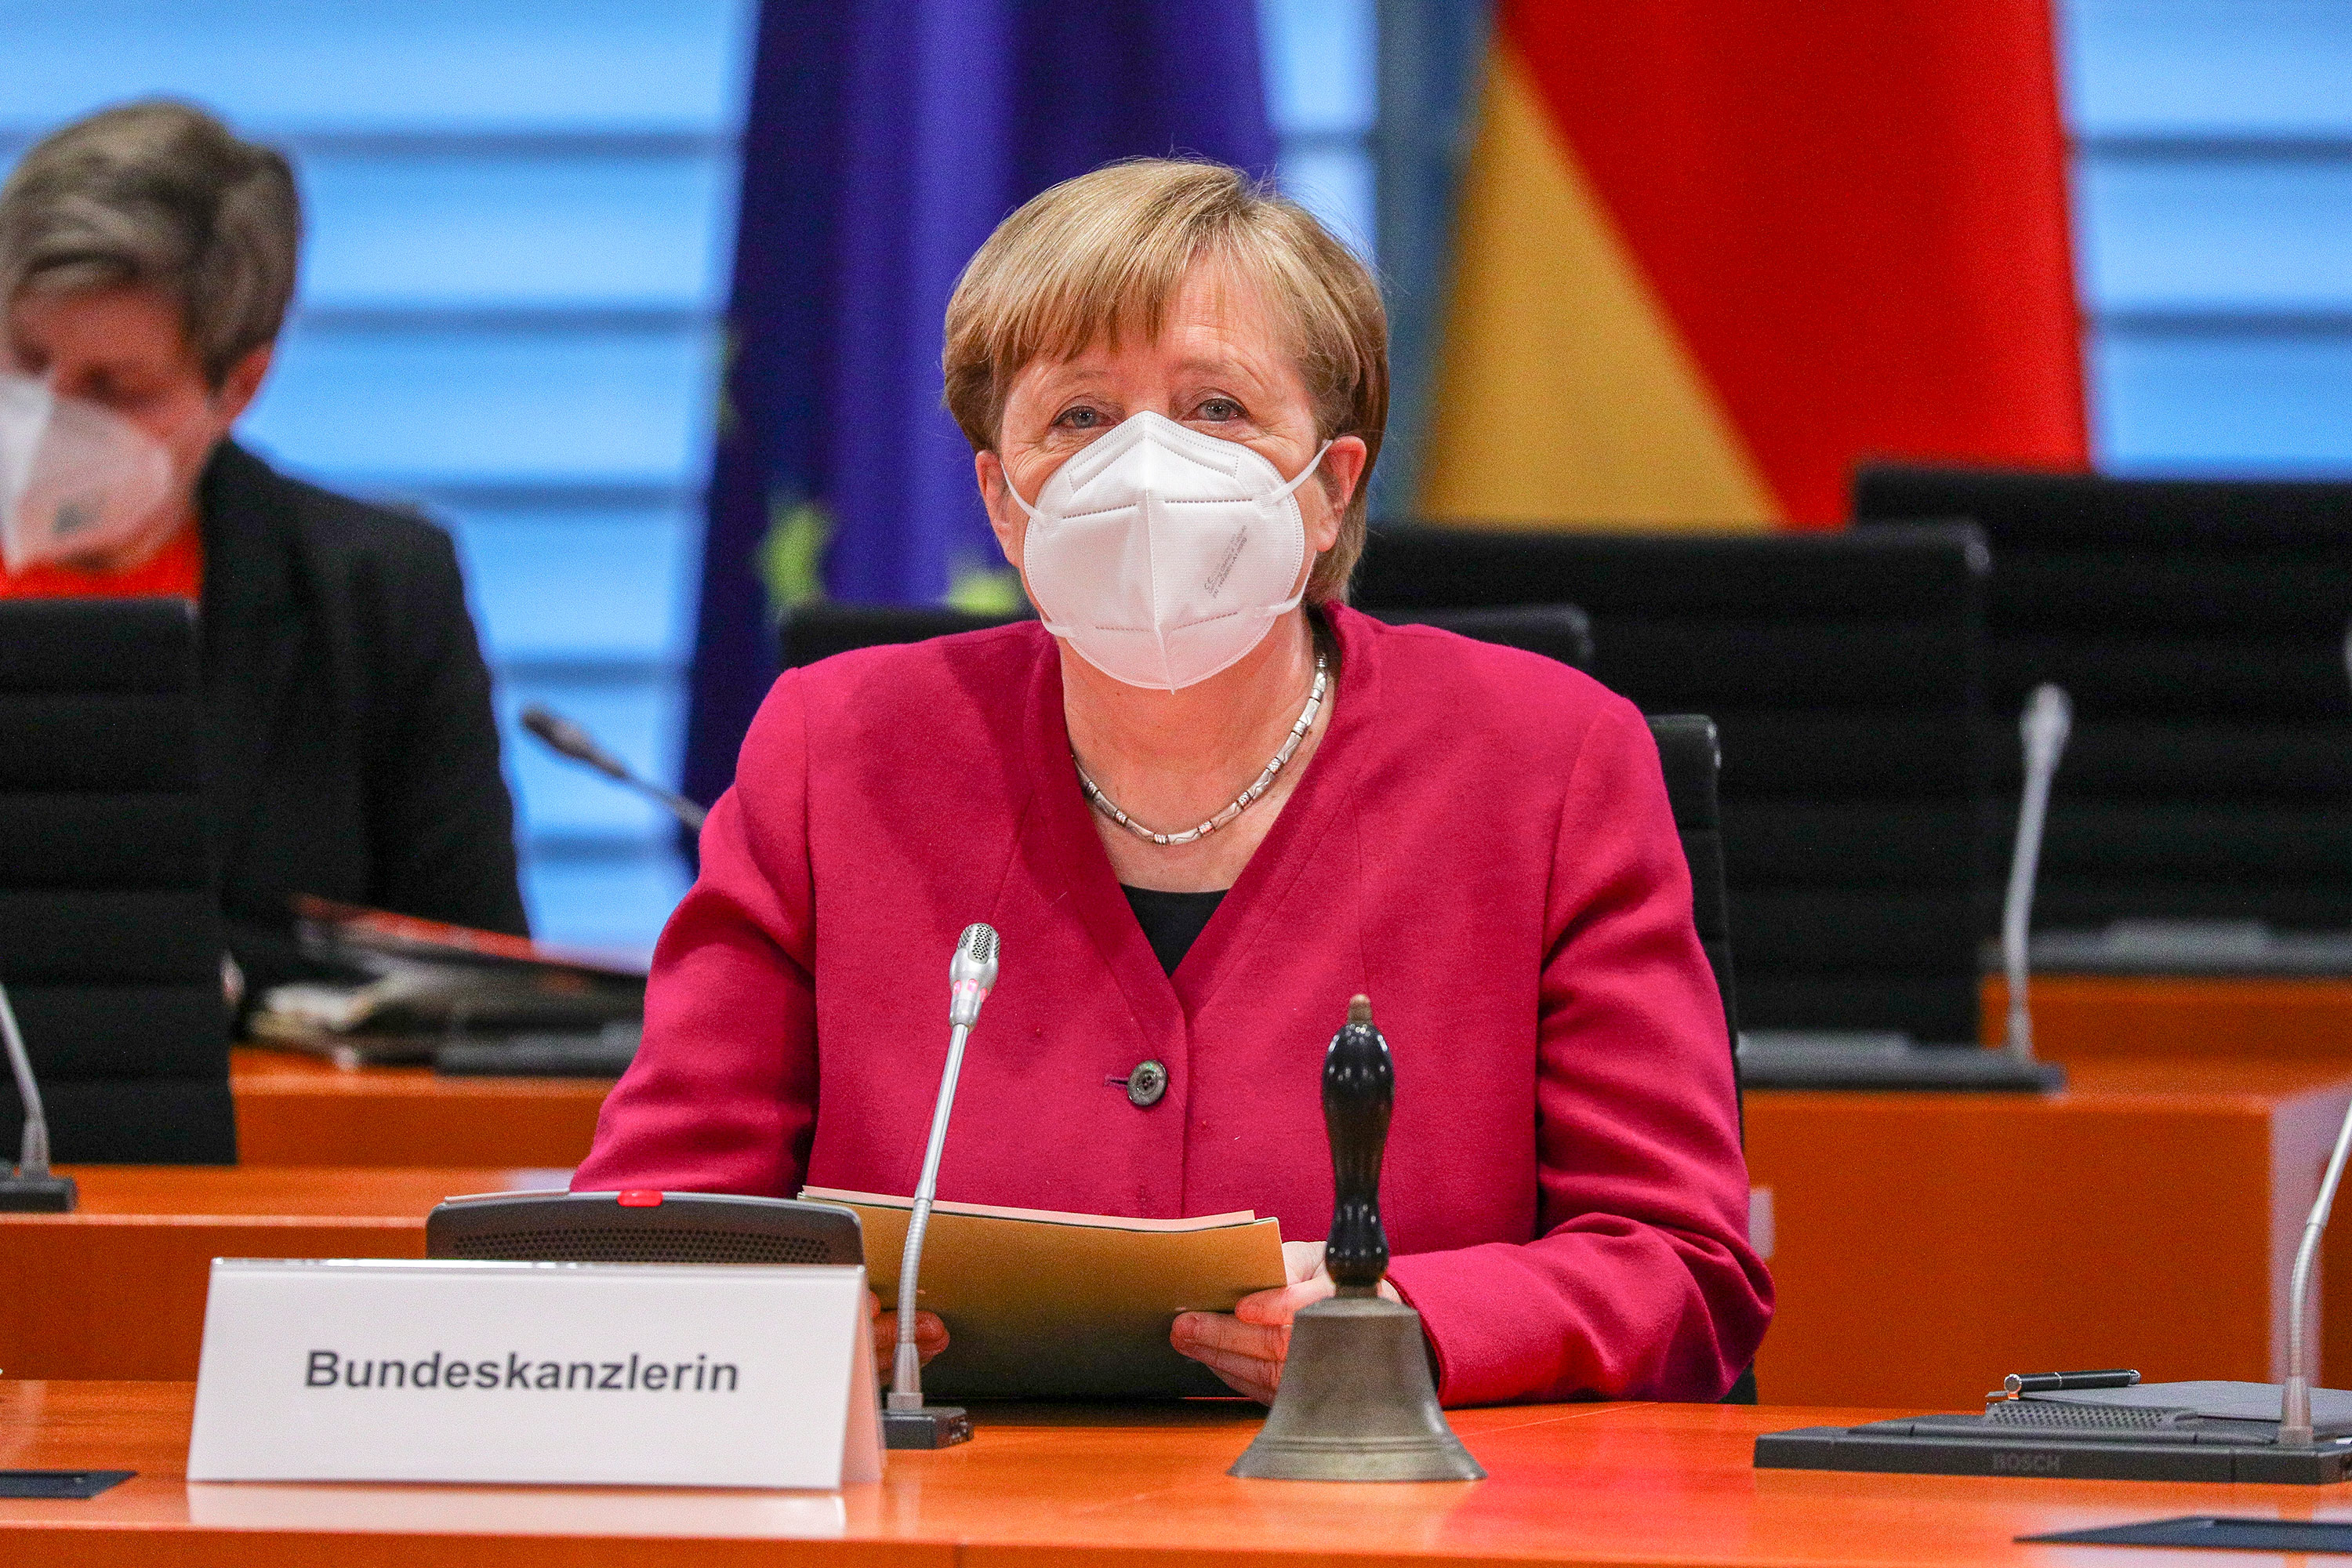 German Chancellor Angela Merkel takes part in a weekly cabinet meeting on March 3, in Berlin, Germany.